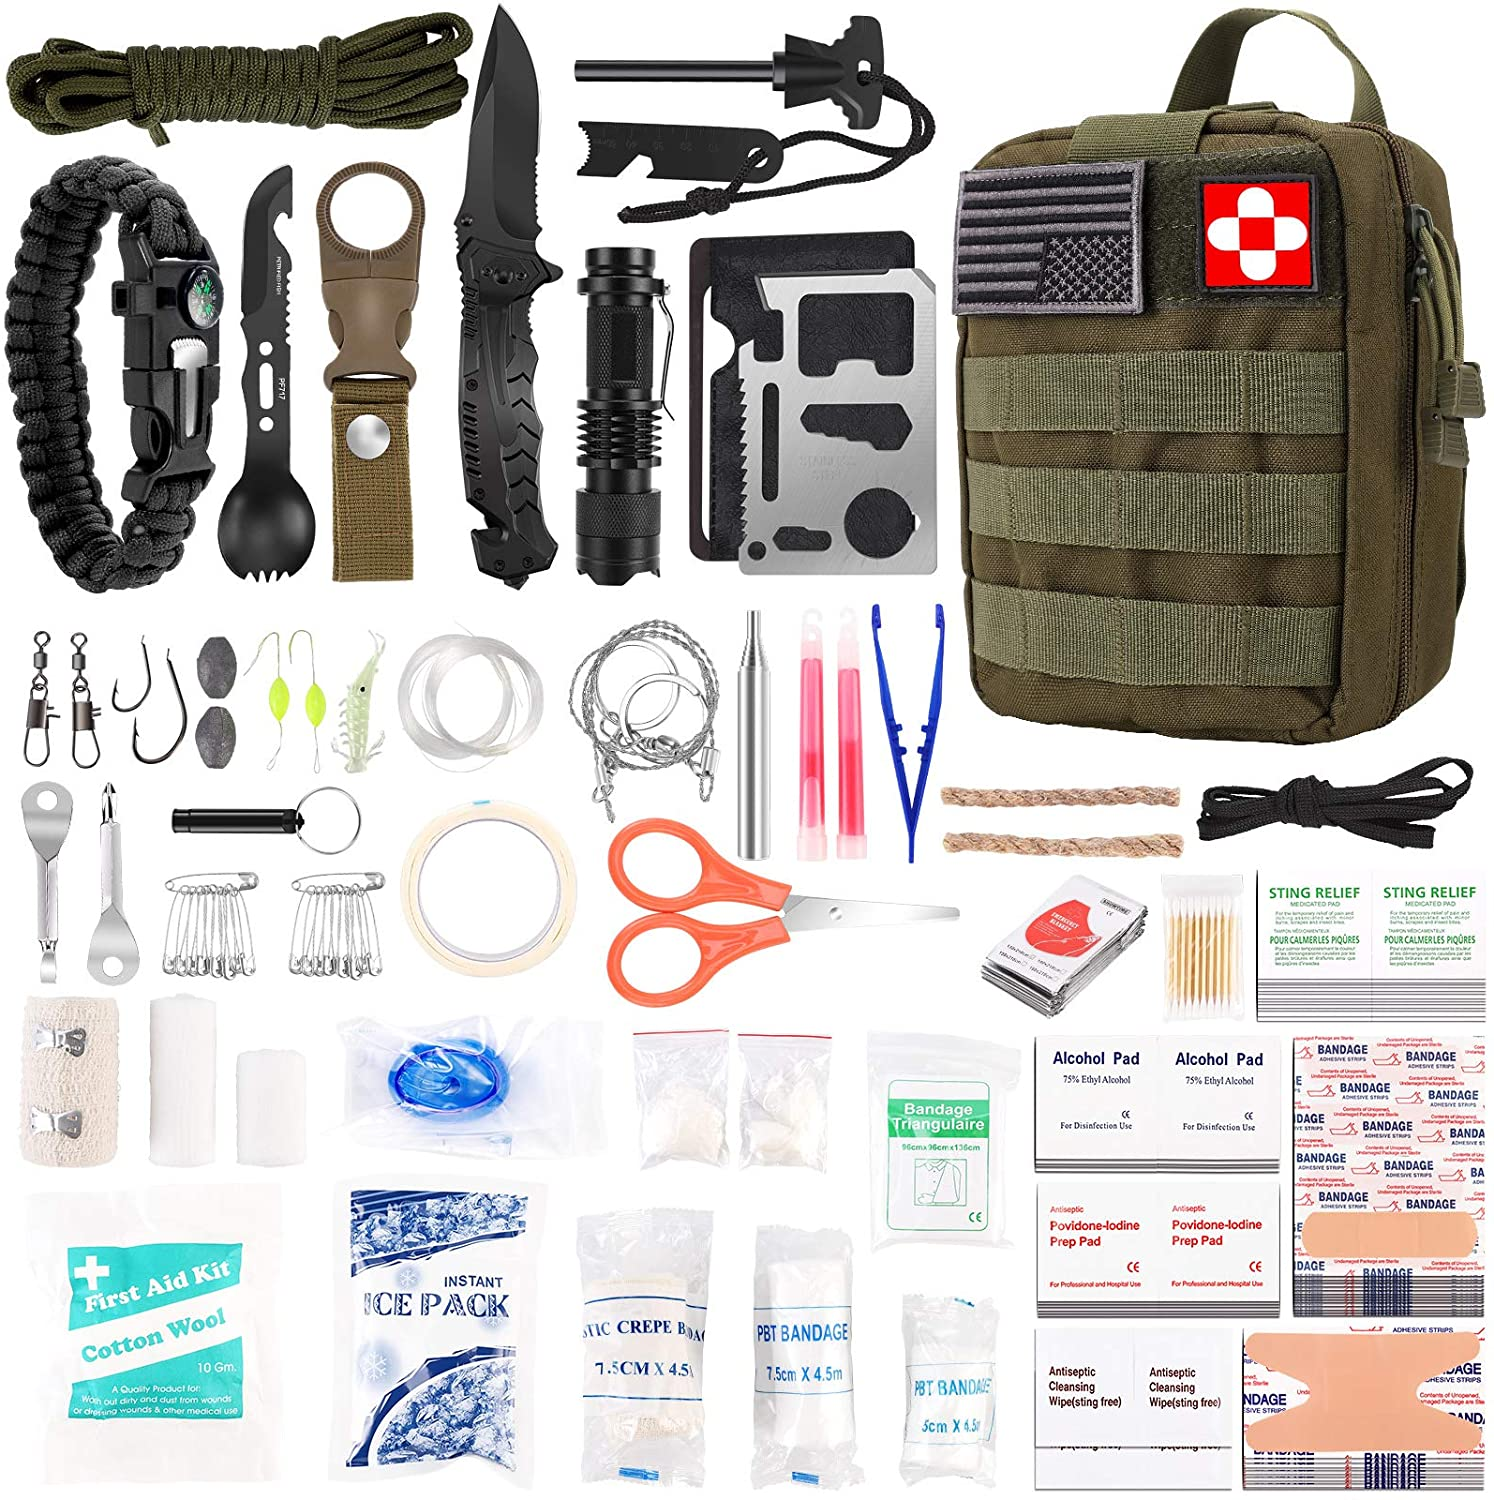 216 Pcs Survival First Aid kit, Professional Survival Gear Equipment Tools First Aid Supplies for SOS Emergency Tactical Hiking Hunting Disaster Camping Adventures(Green)